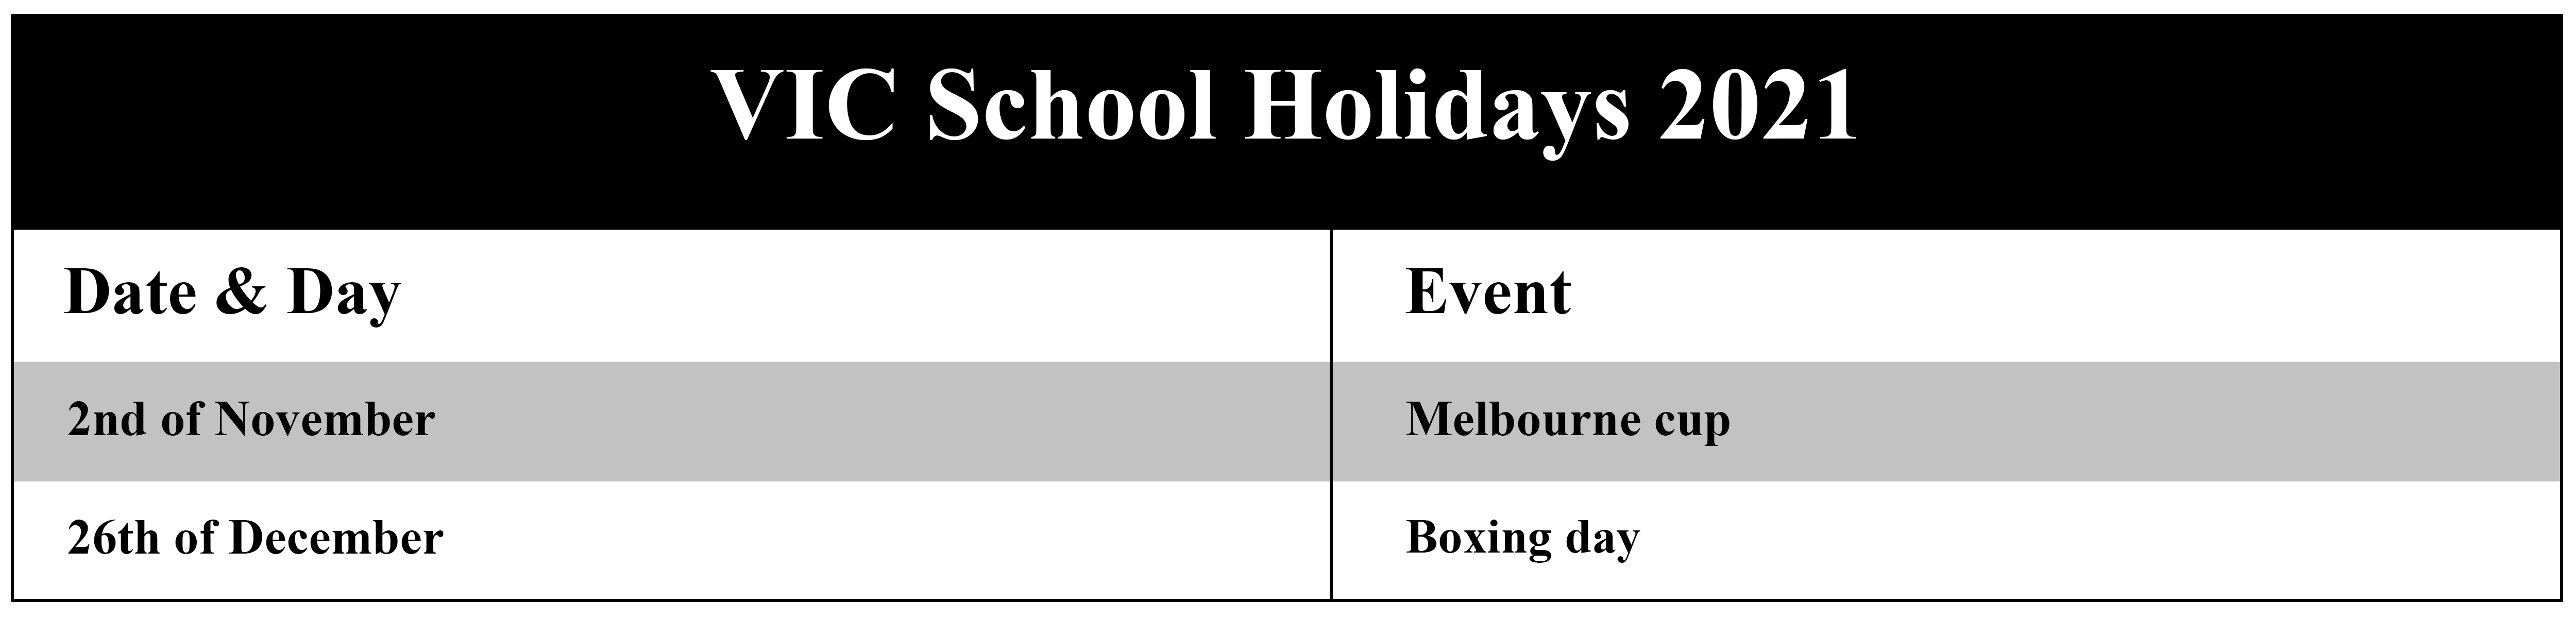 VIC School Holidays 2021